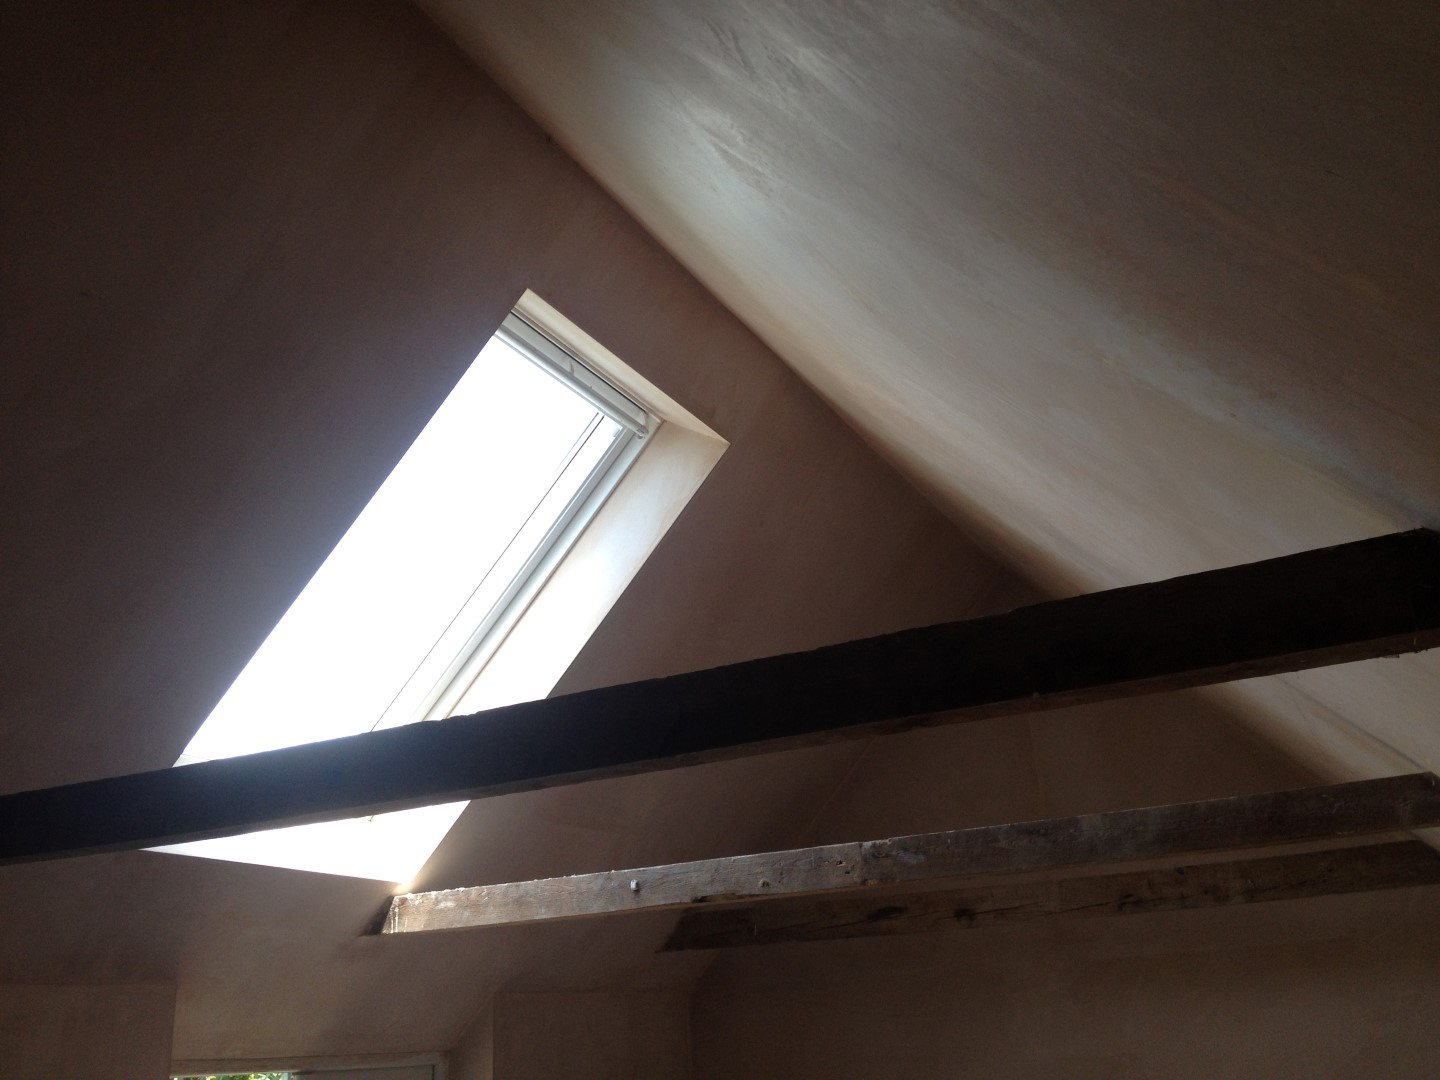 Wiliminington Way - Plastering and rendering